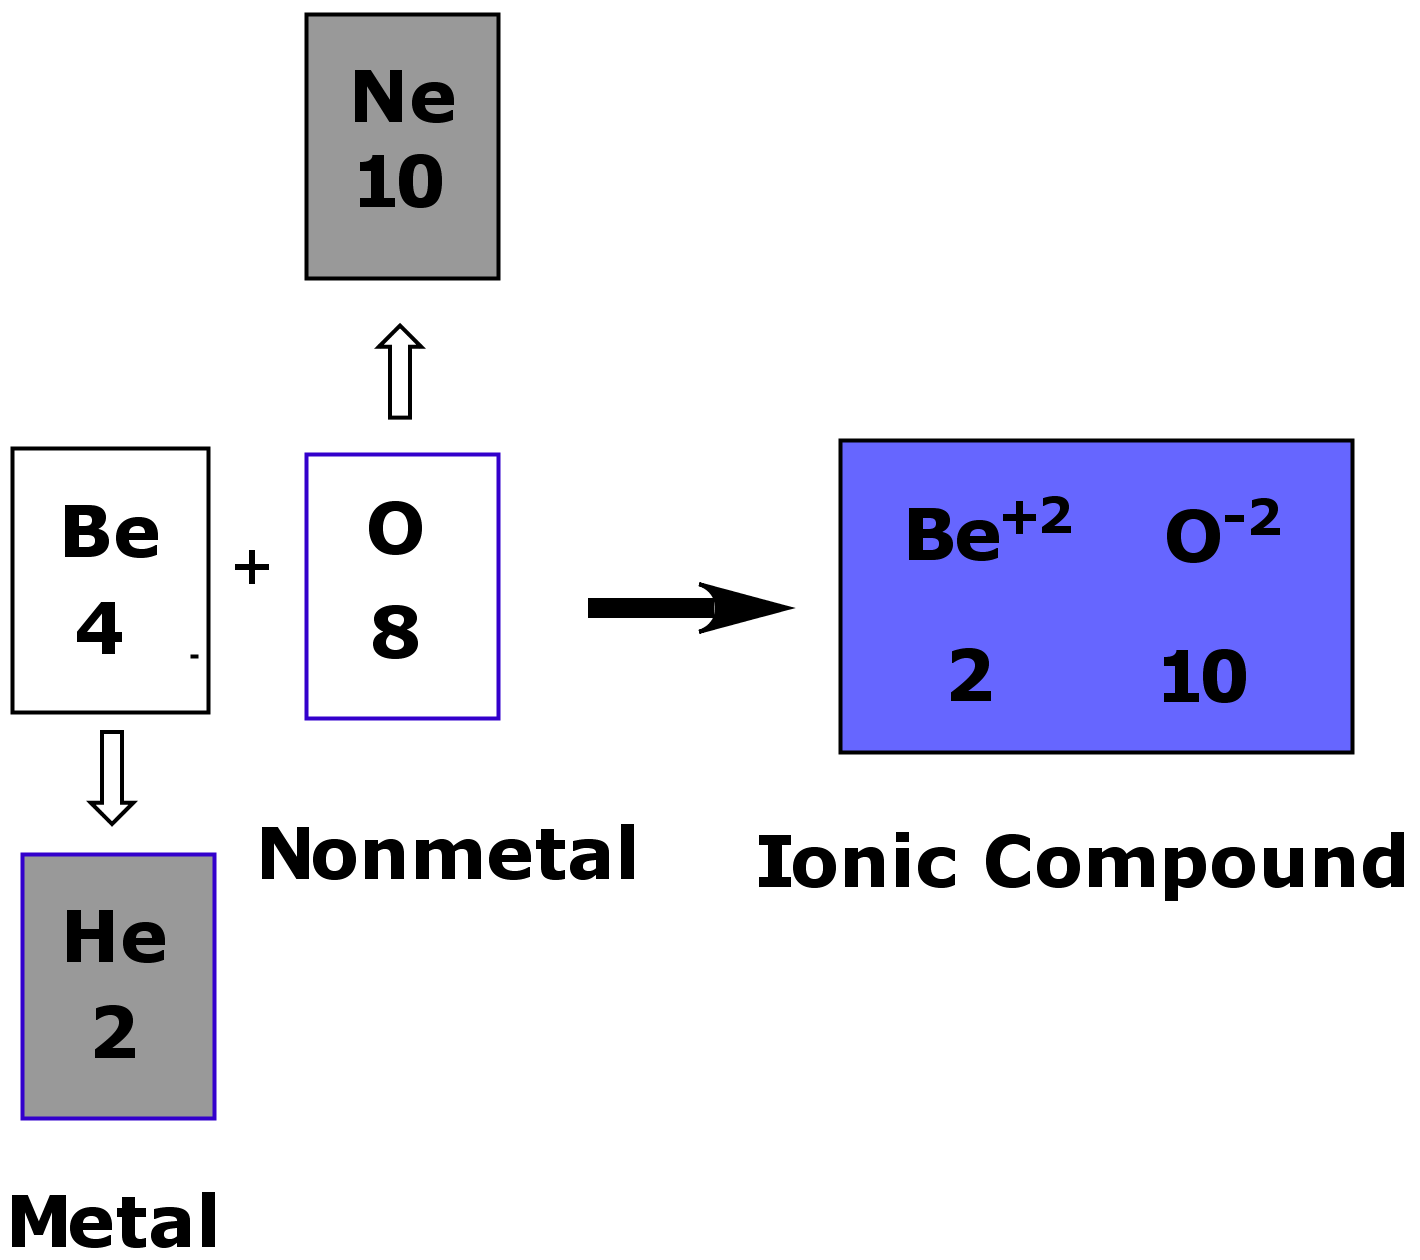 hight resolution of bringing beryllium and oxygen together to form an ionic compound